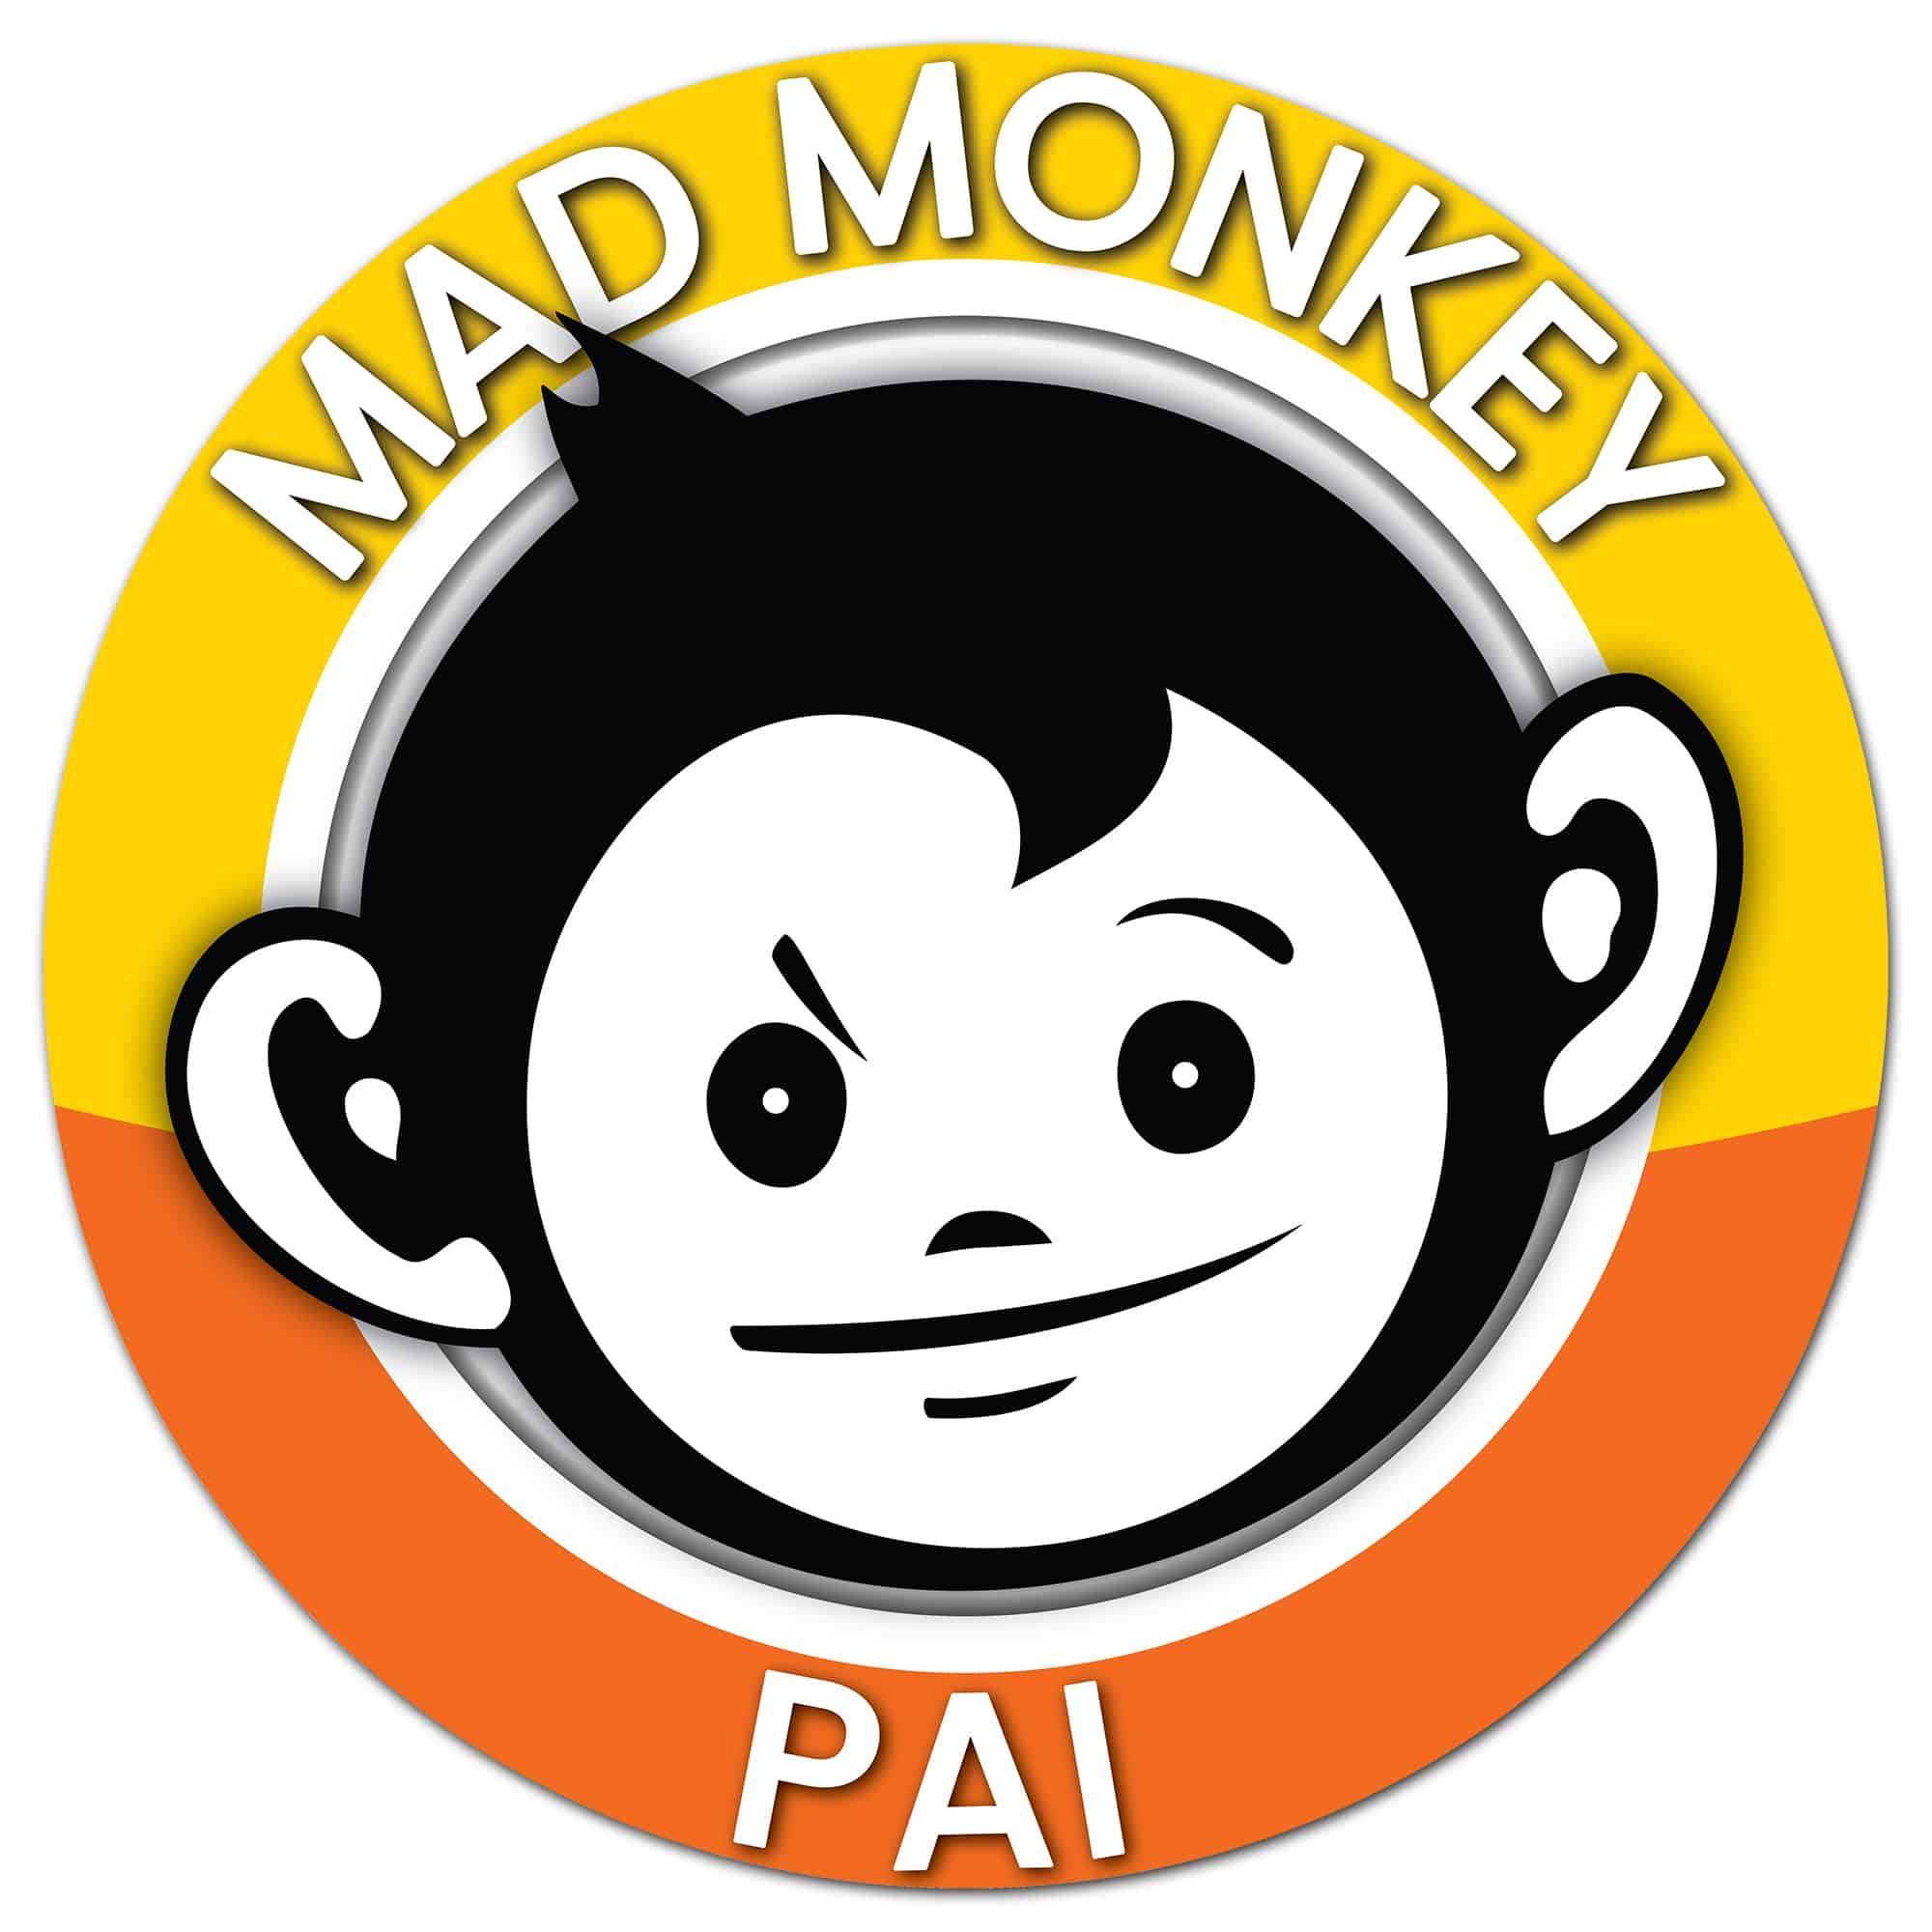 Mad Monkey Hostels Pai Facebook